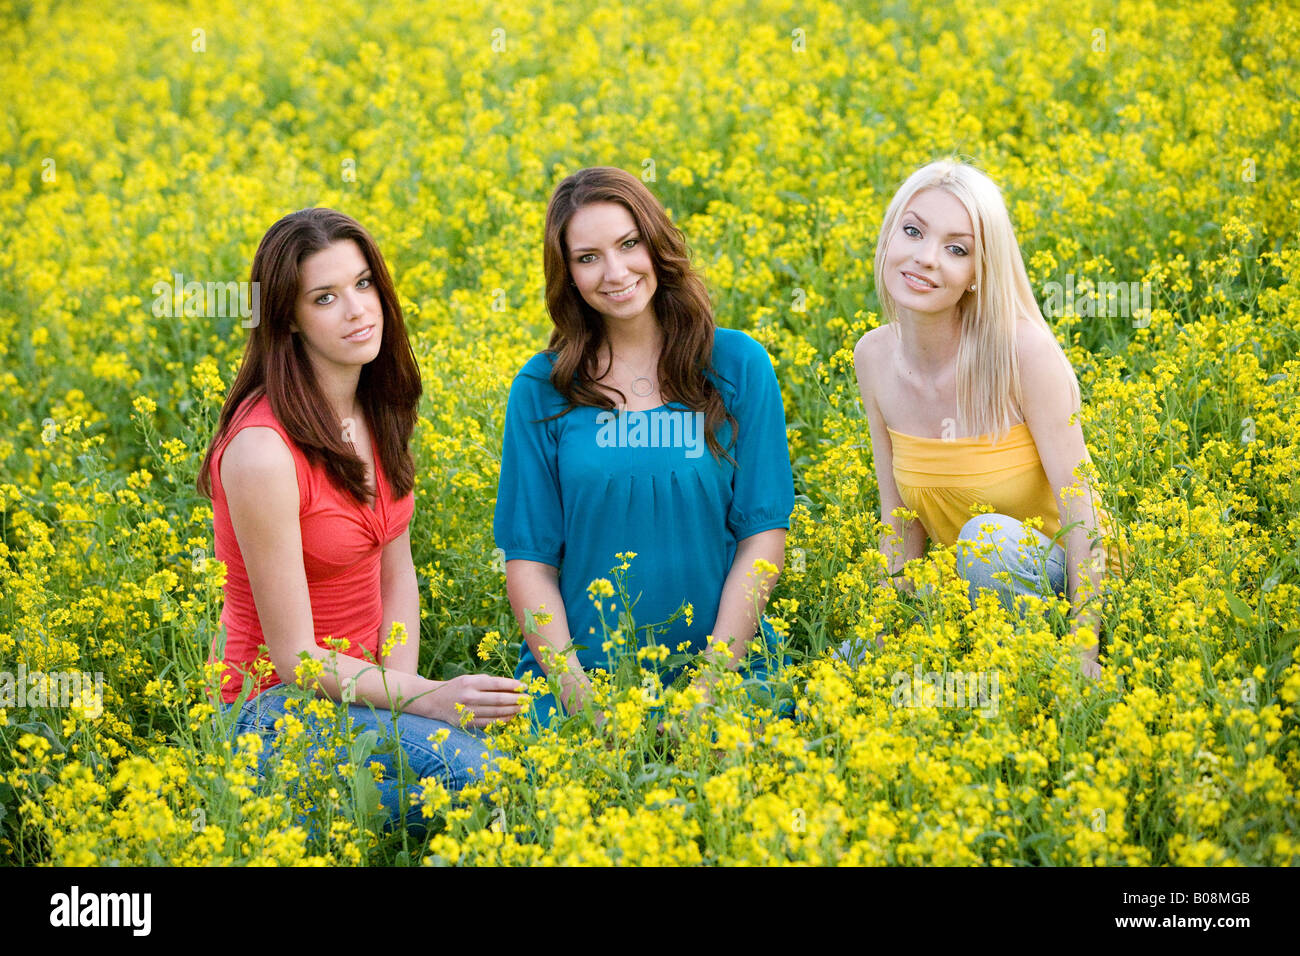 Three young women smiling and sitting in a yellow mustard field. - Stock Image